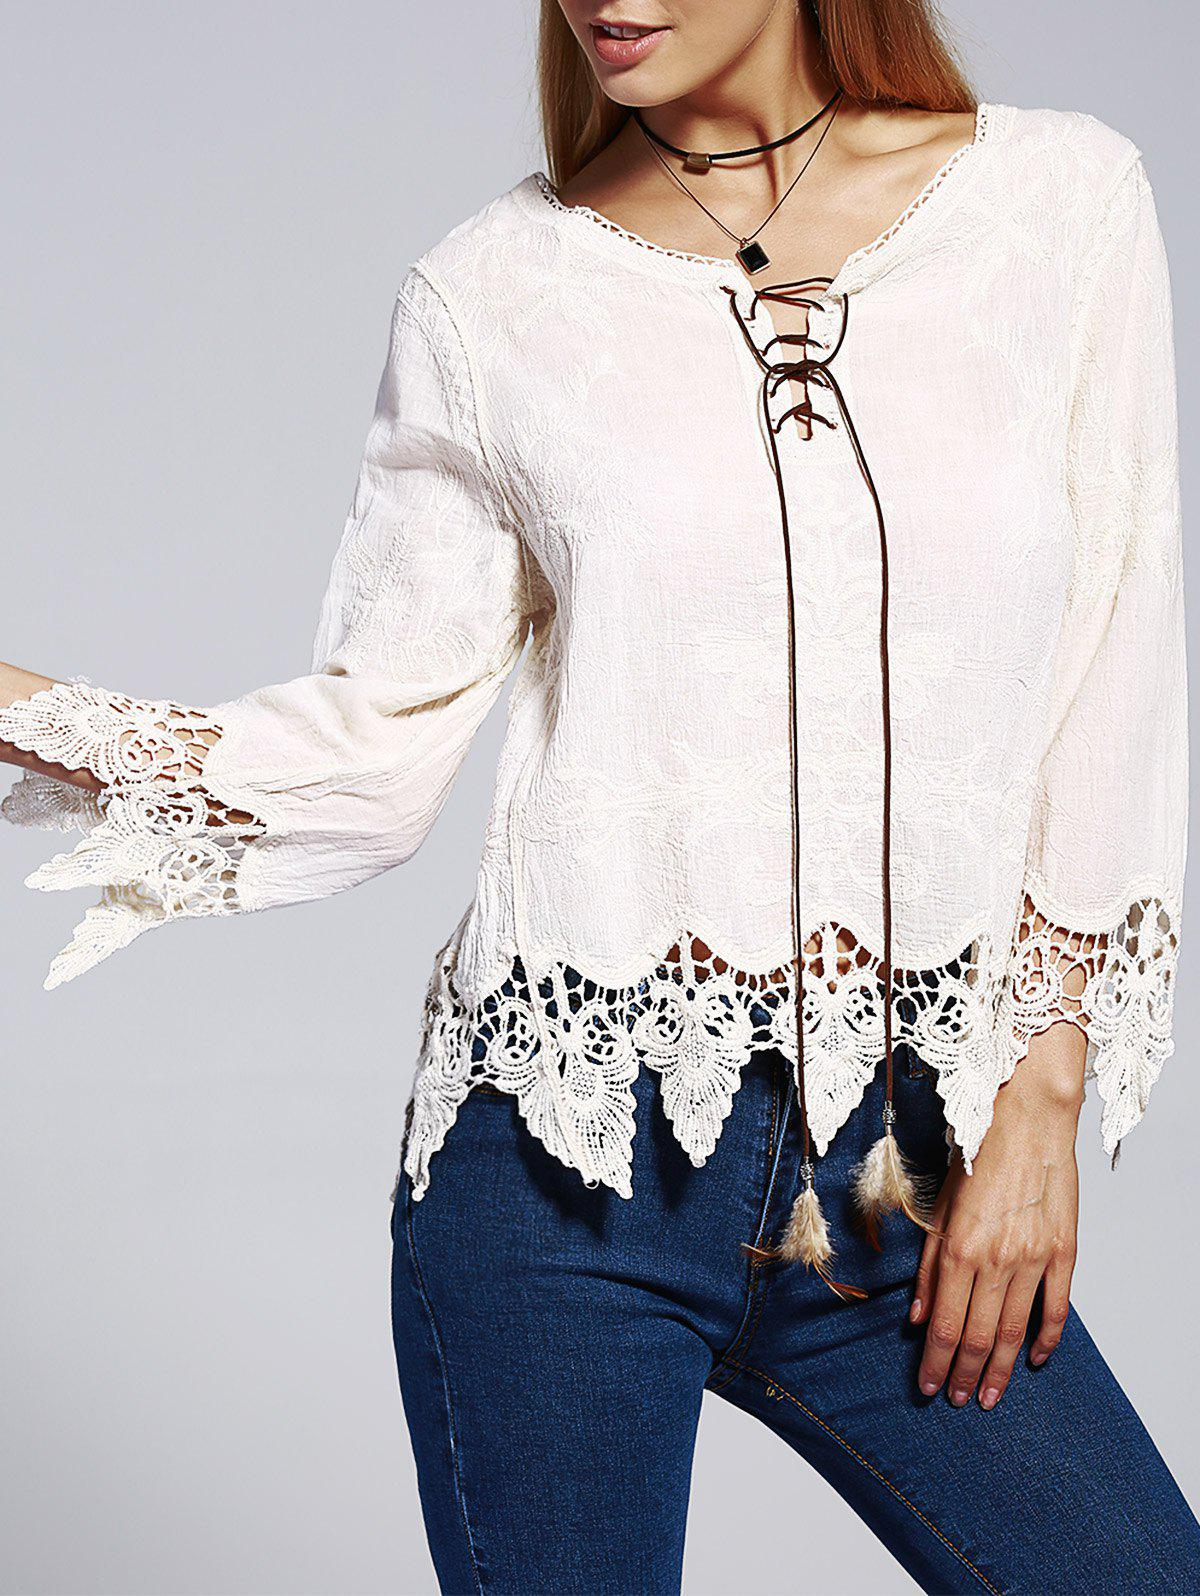 Bohemian Women's V-Neck Lace-Up Lace Panelled Nine-Minute Sleeves Blouse - BEIGE ONE SIZE(FIT SIZE XS TO M)